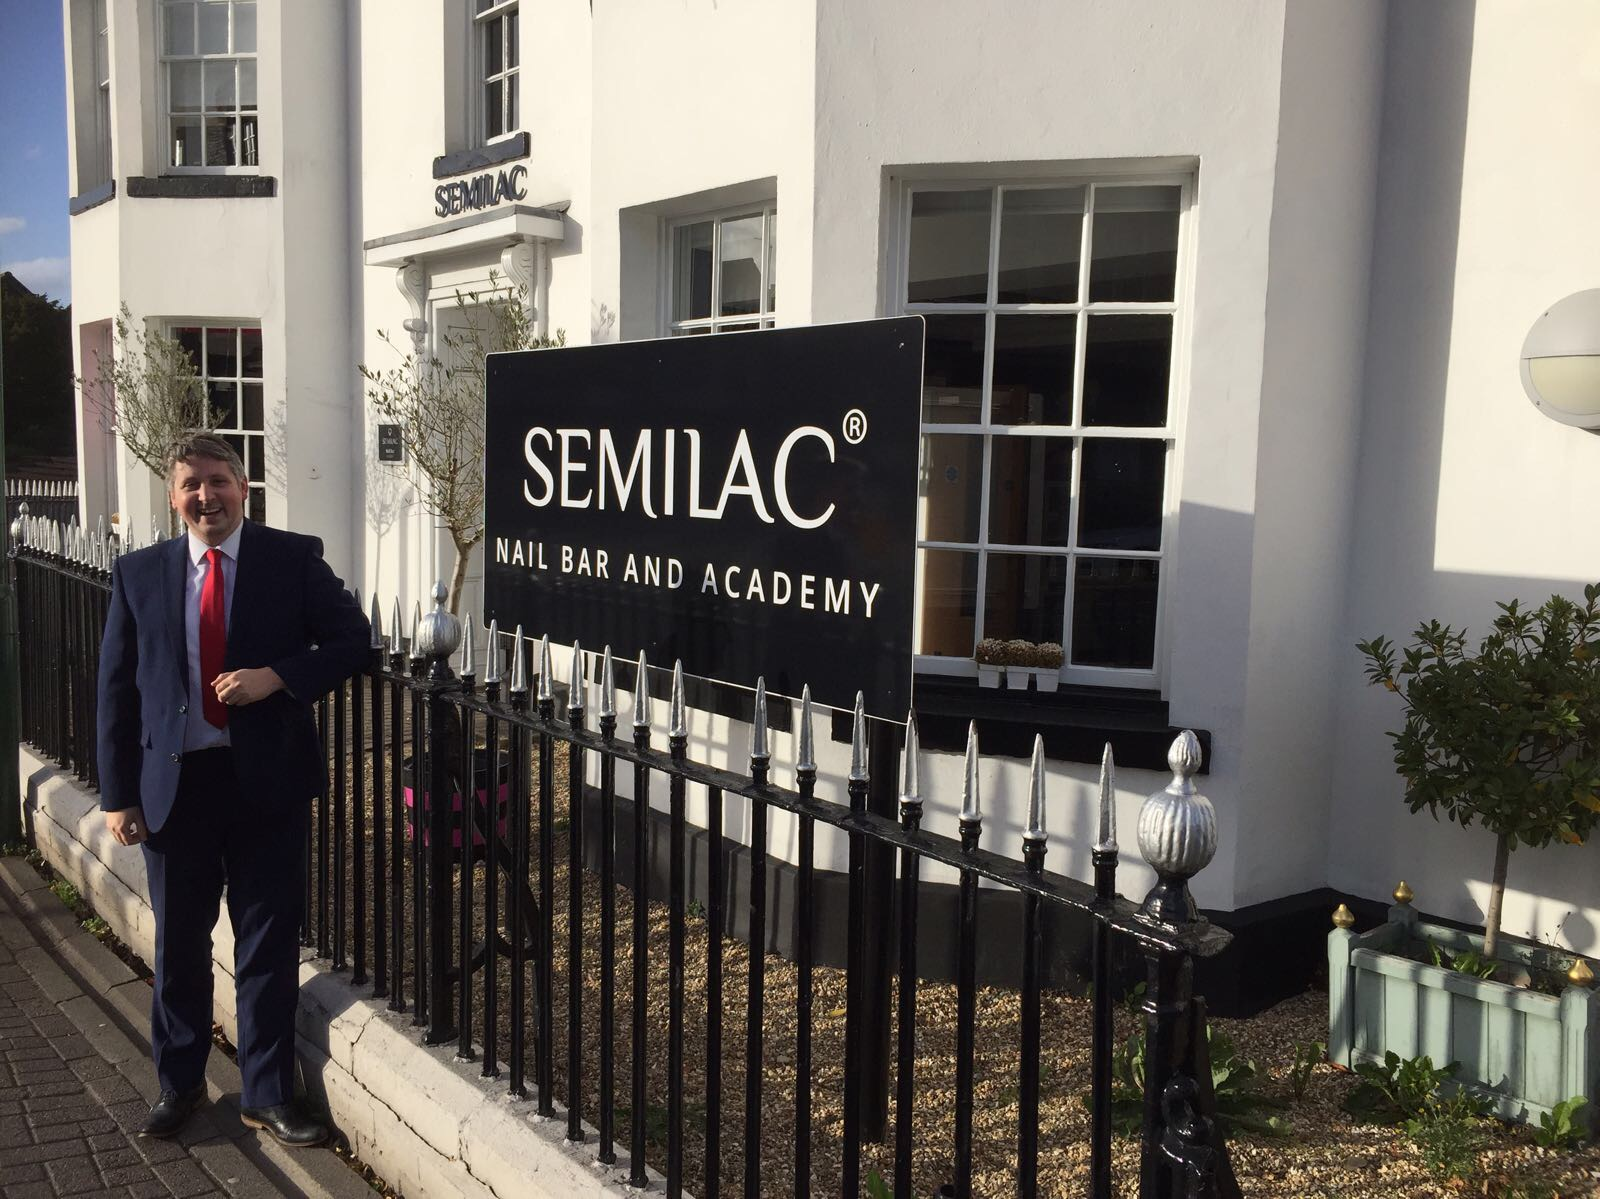 Semilac UK Managing Director Antonio Socci outside the salon HQ in Solihull